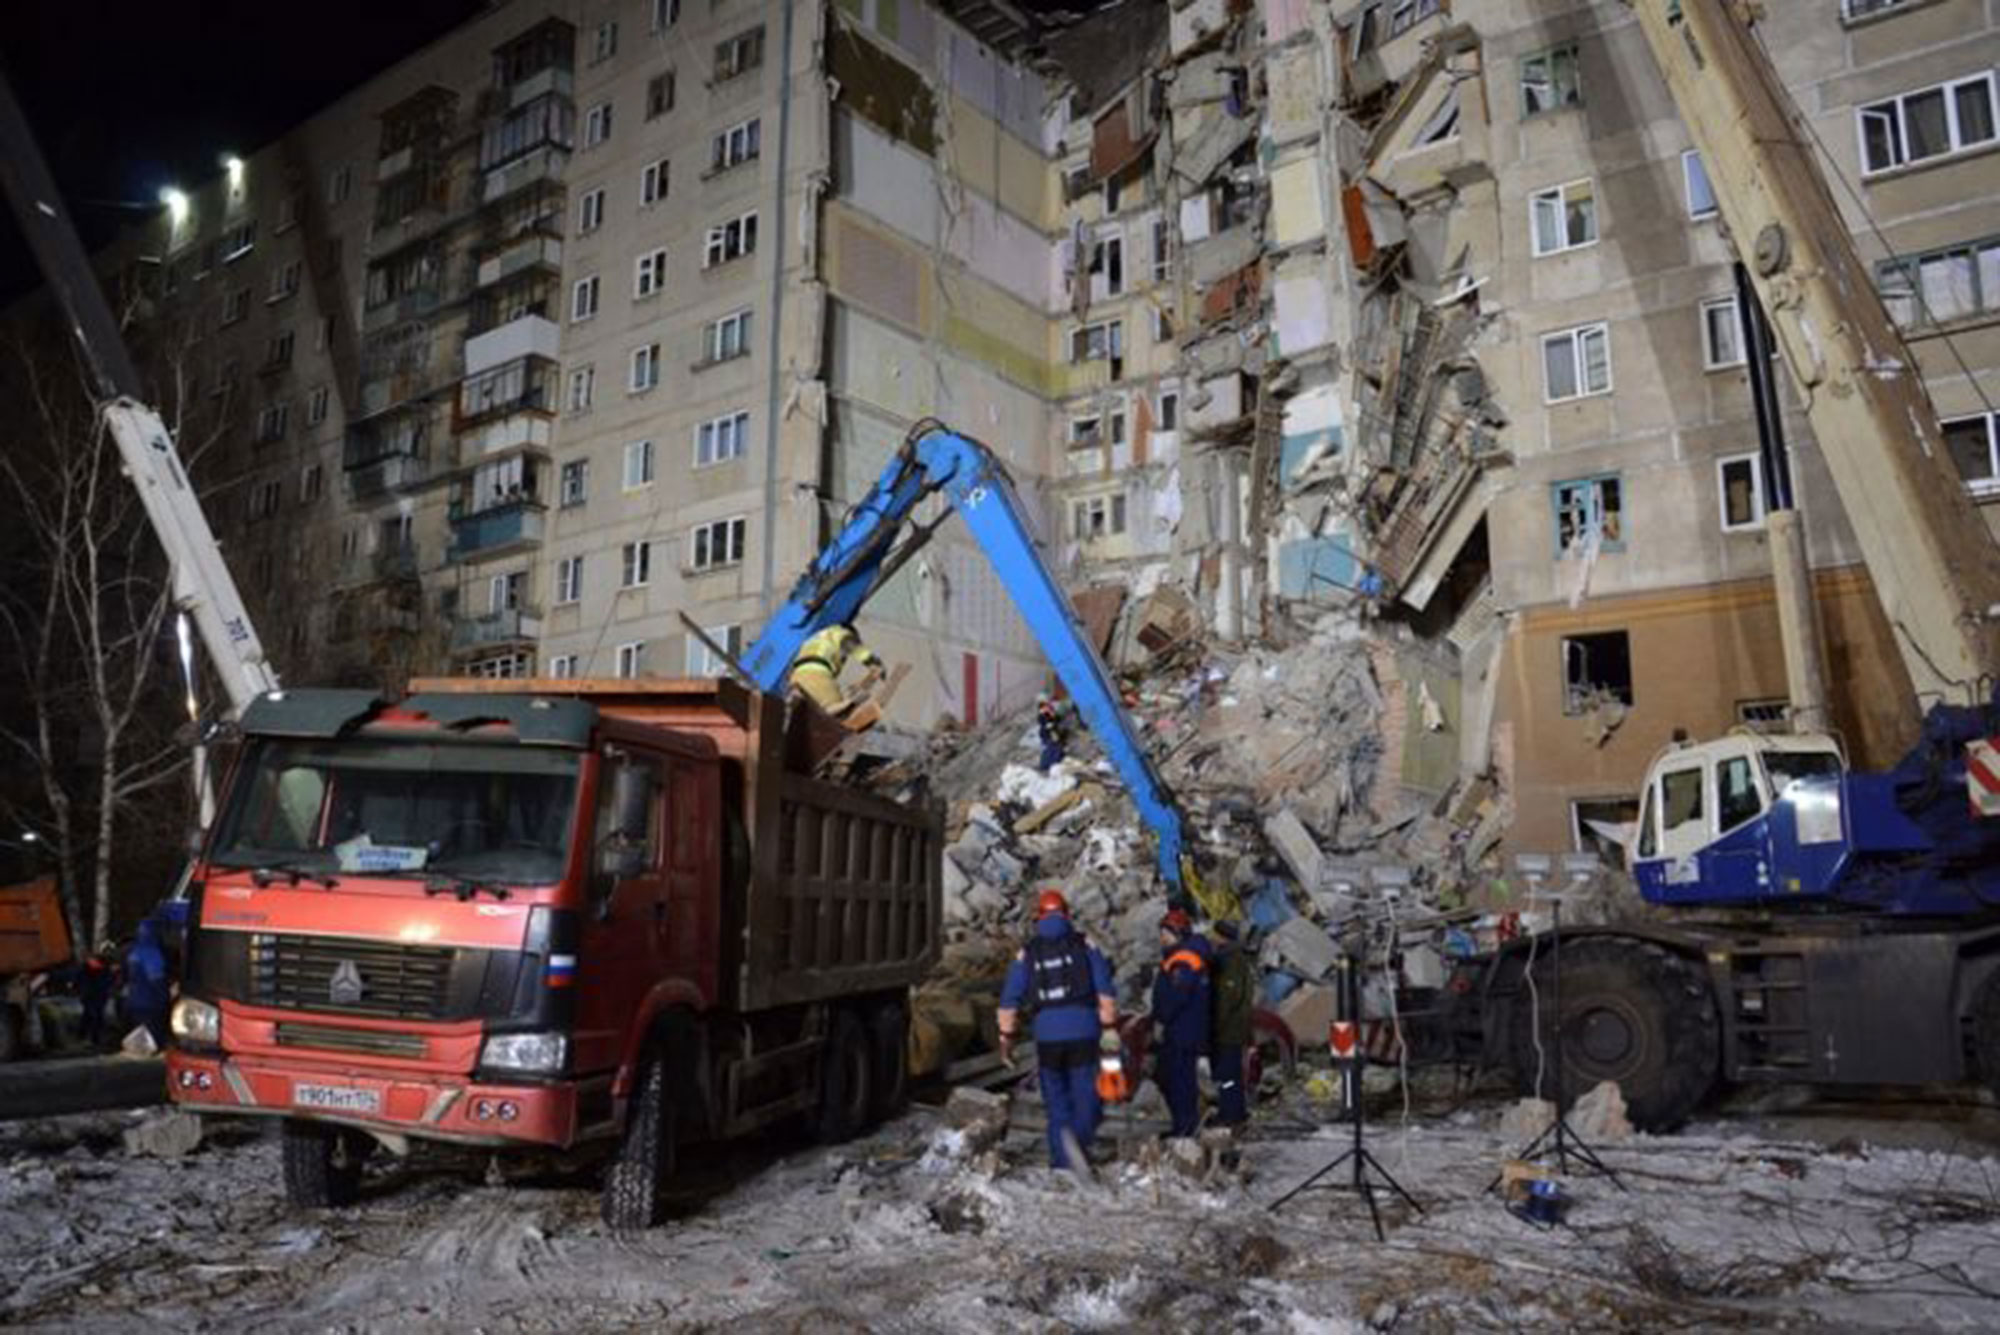 Gas explosion in an apartment building in Magnitogorsk, Russian Federation - 01 Jan 2019